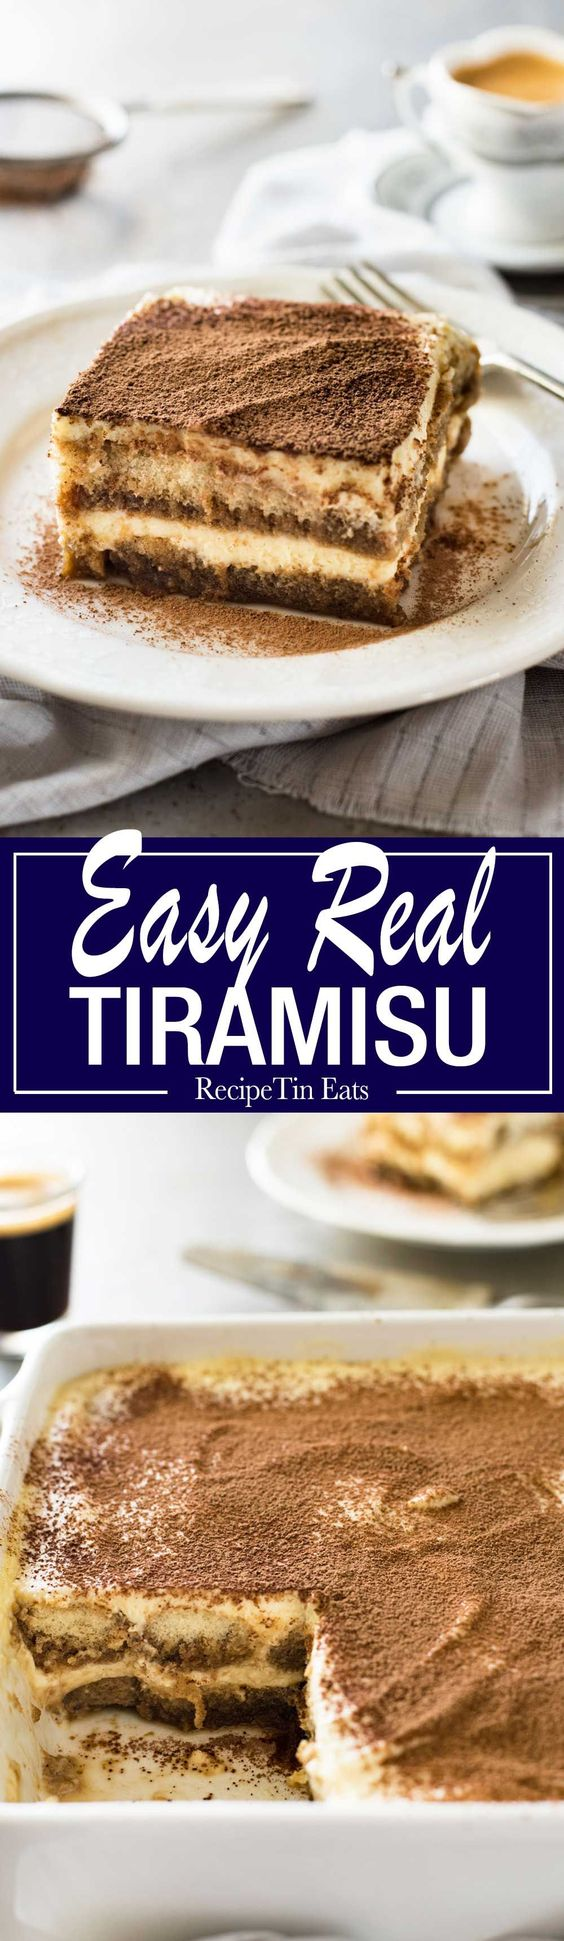 I love this recipe, it's a perfect Tiramisu recipe. A chef recipe too!